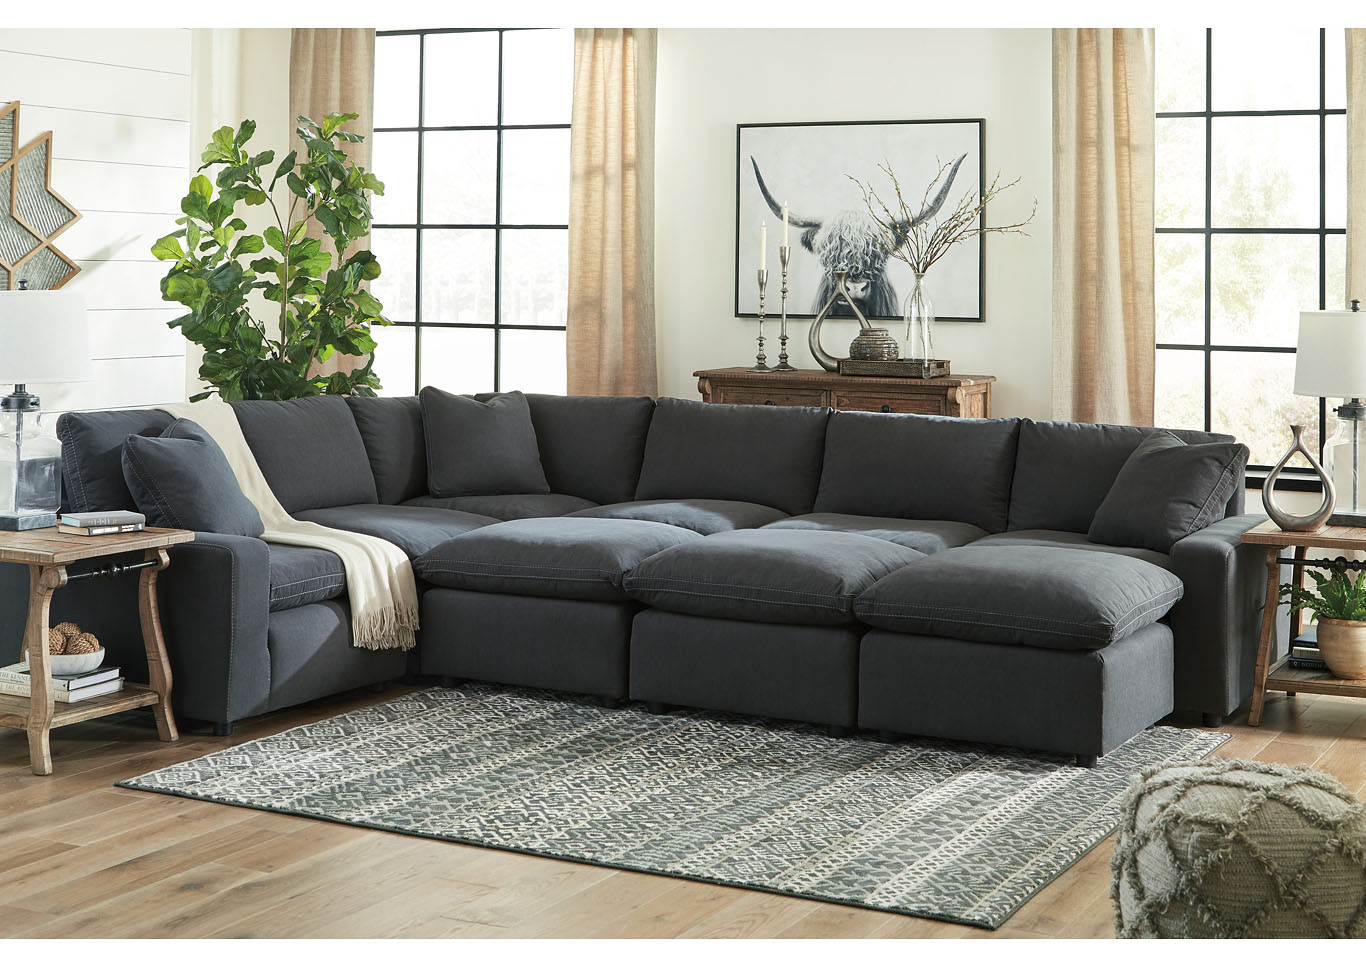 Savesto Charcoal 6 Piece Sectional w/3 Ottomans,Signature Design By Ashley